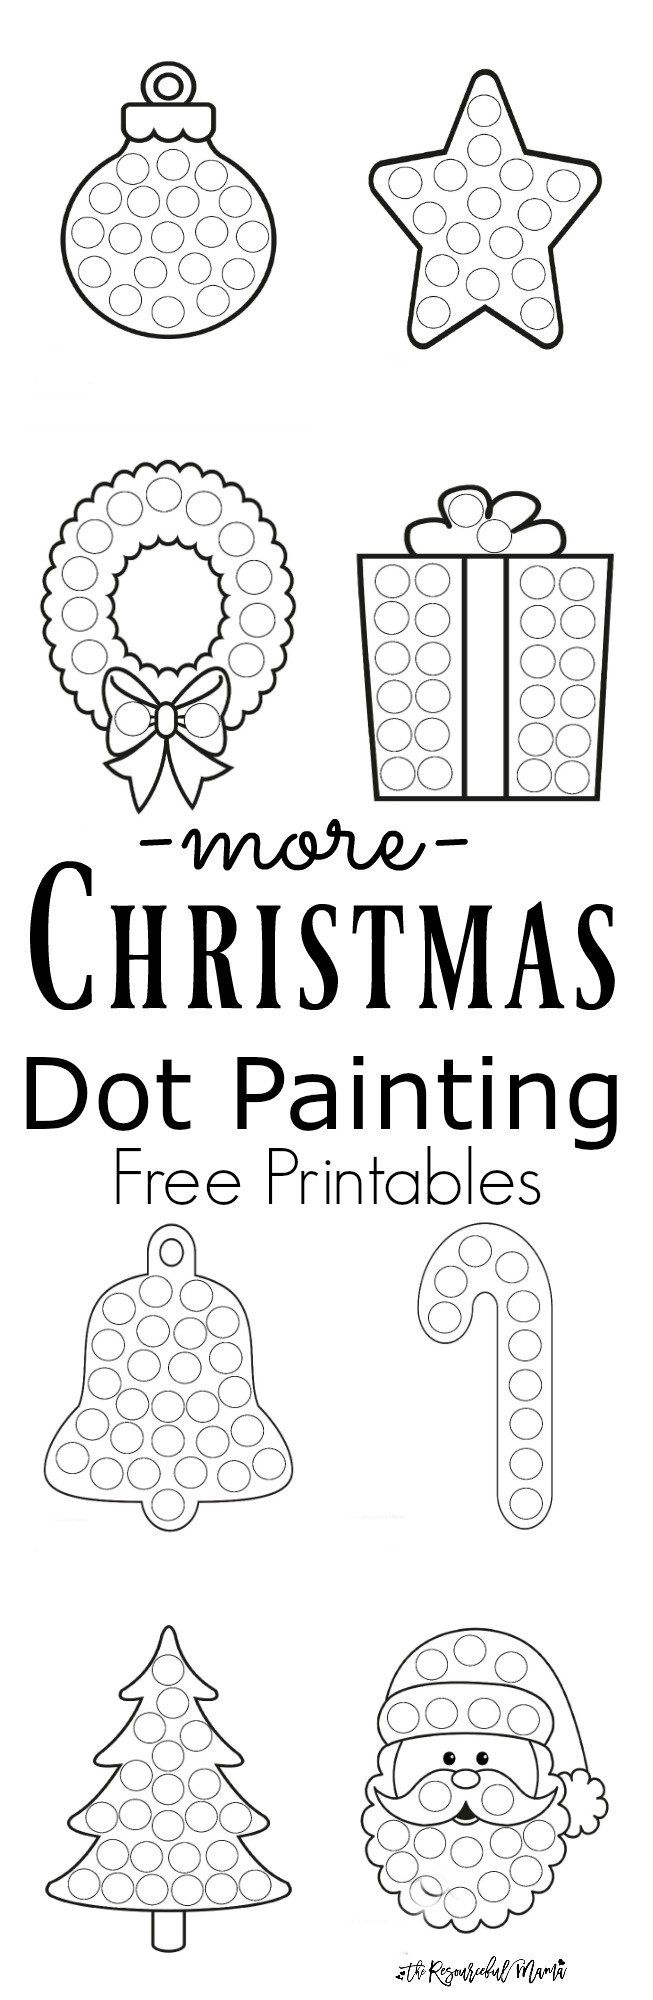 Best 25+ Preschool christmas ideas on Pinterest | Preschool ...